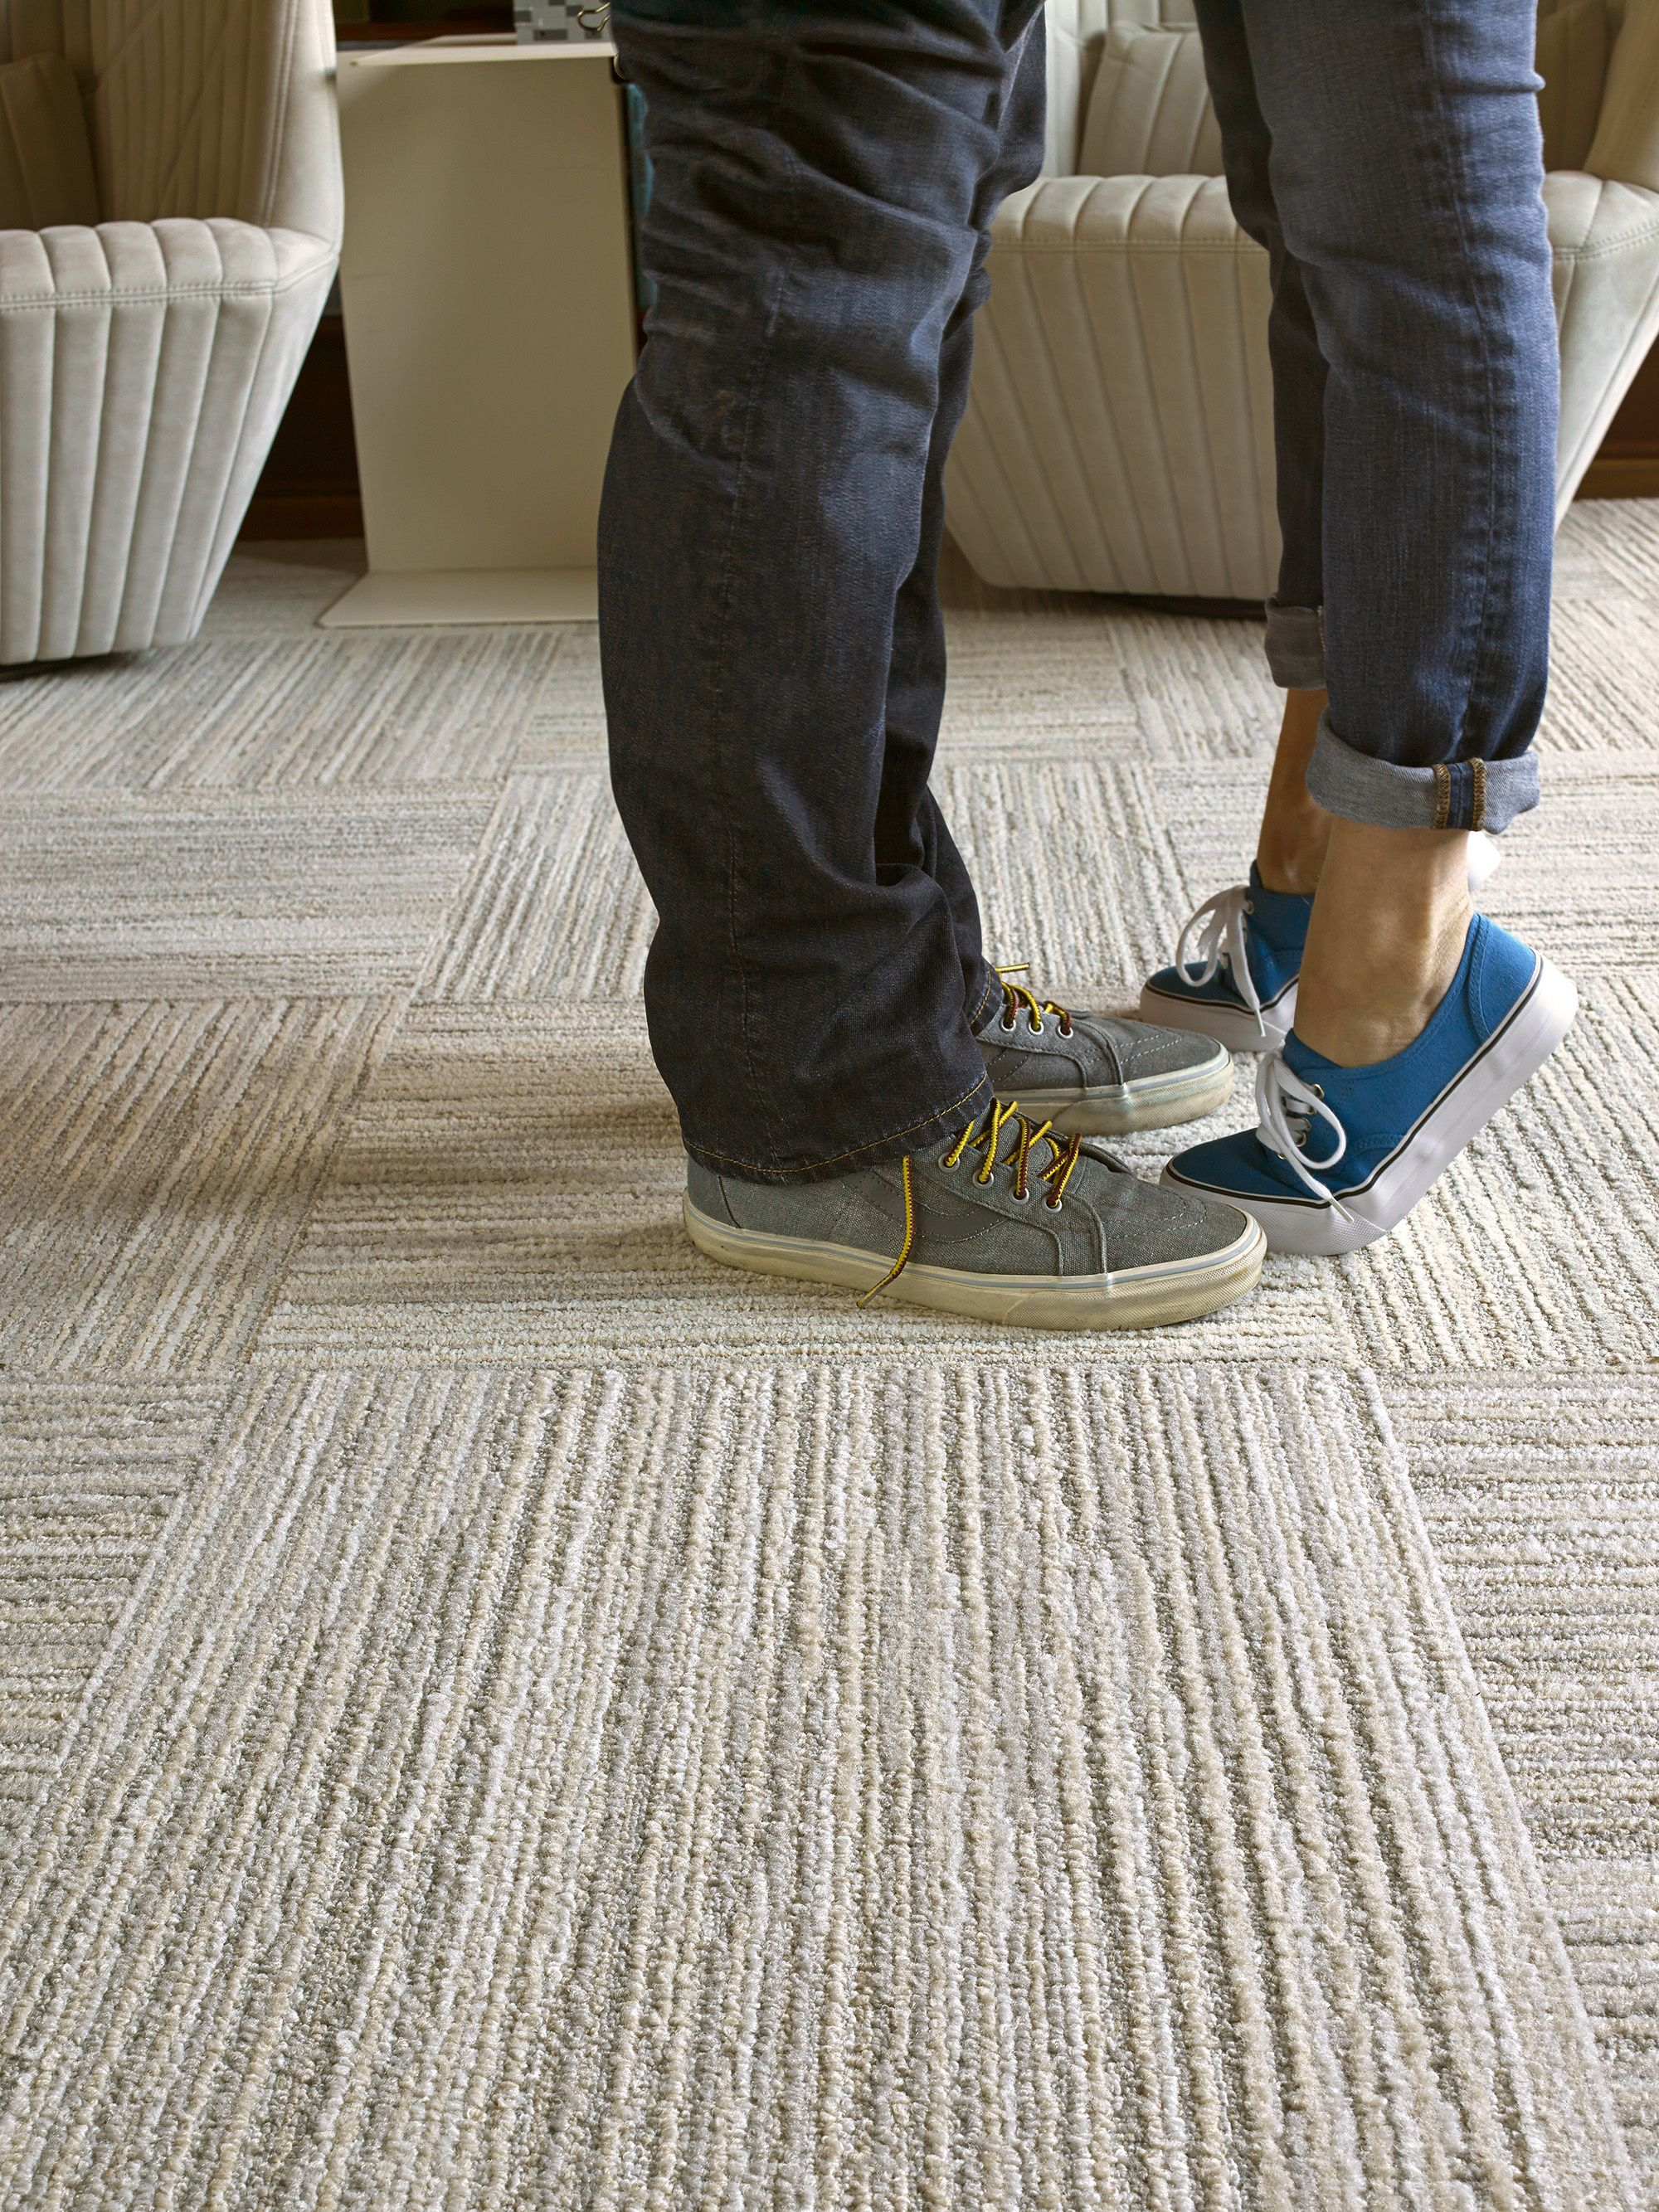 Perfect When The Texture Is This Lush And Comfy, Itu0027s No Wonder Everyoneu0027s Falling  In Love With Fully Barked Carpet Squares. | Spring Into Décor | Pinterest  ... Pictures Gallery